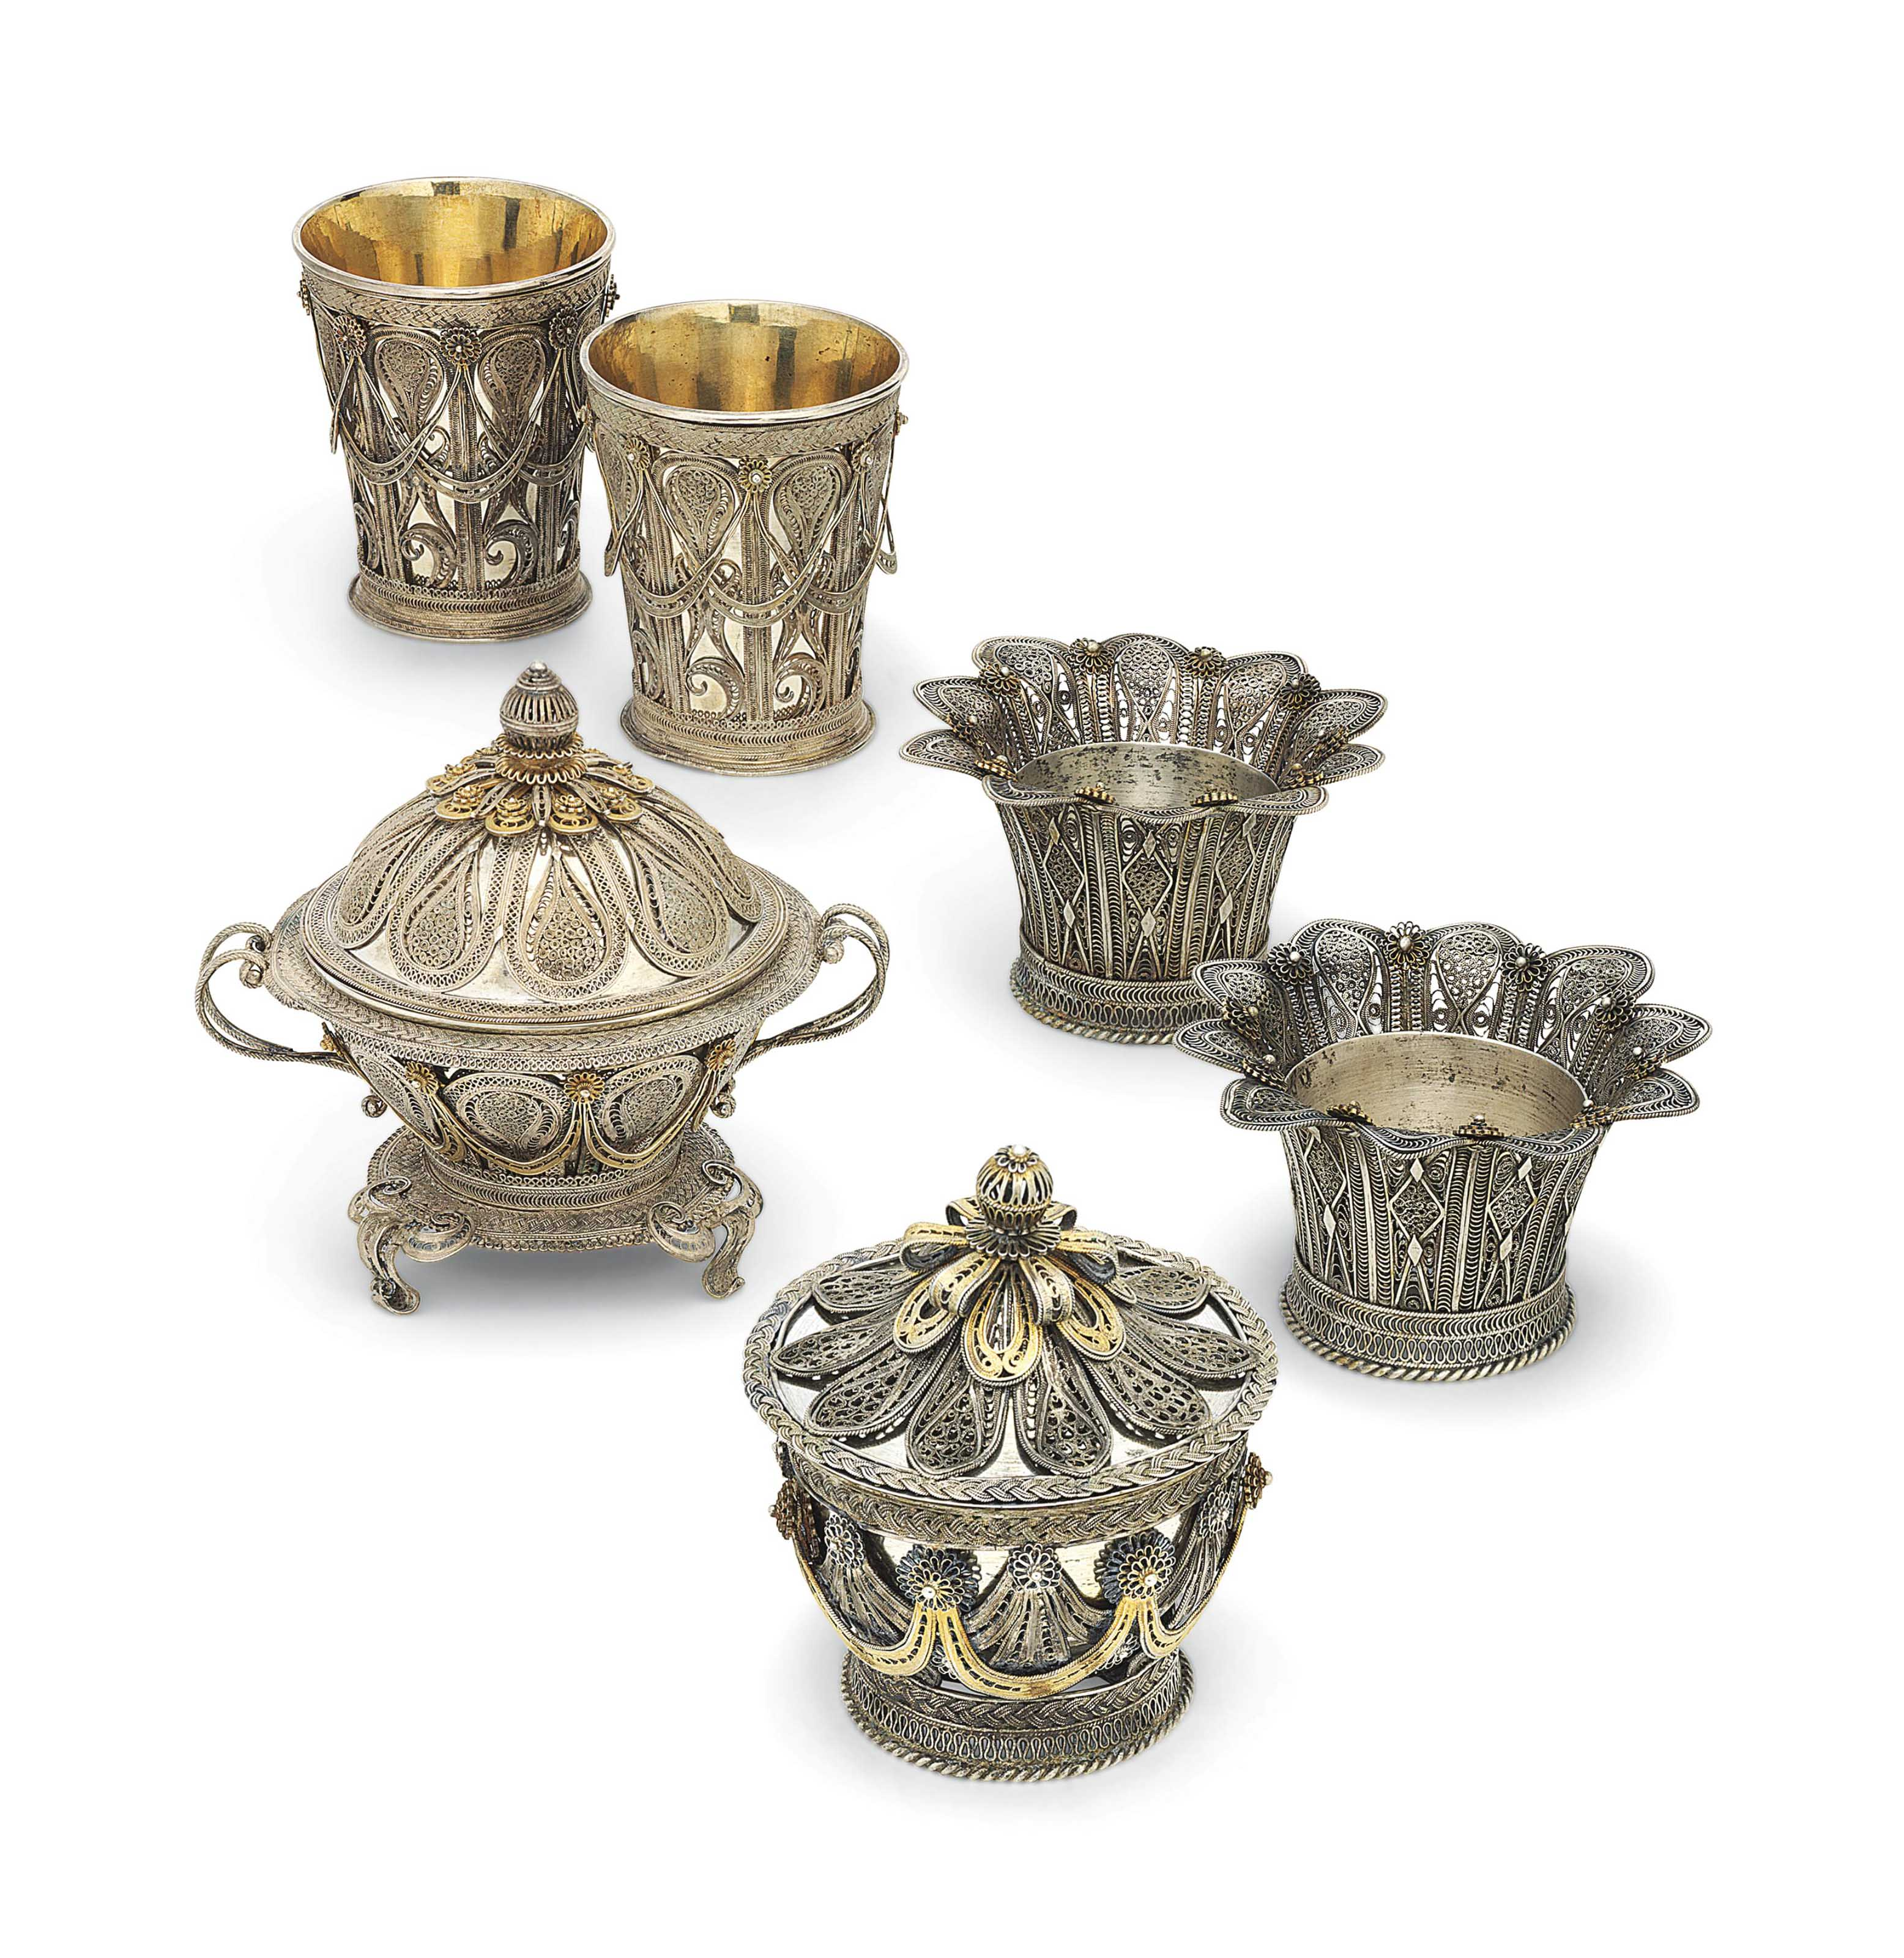 A GROUP OF OTTOMAN SILVER AND